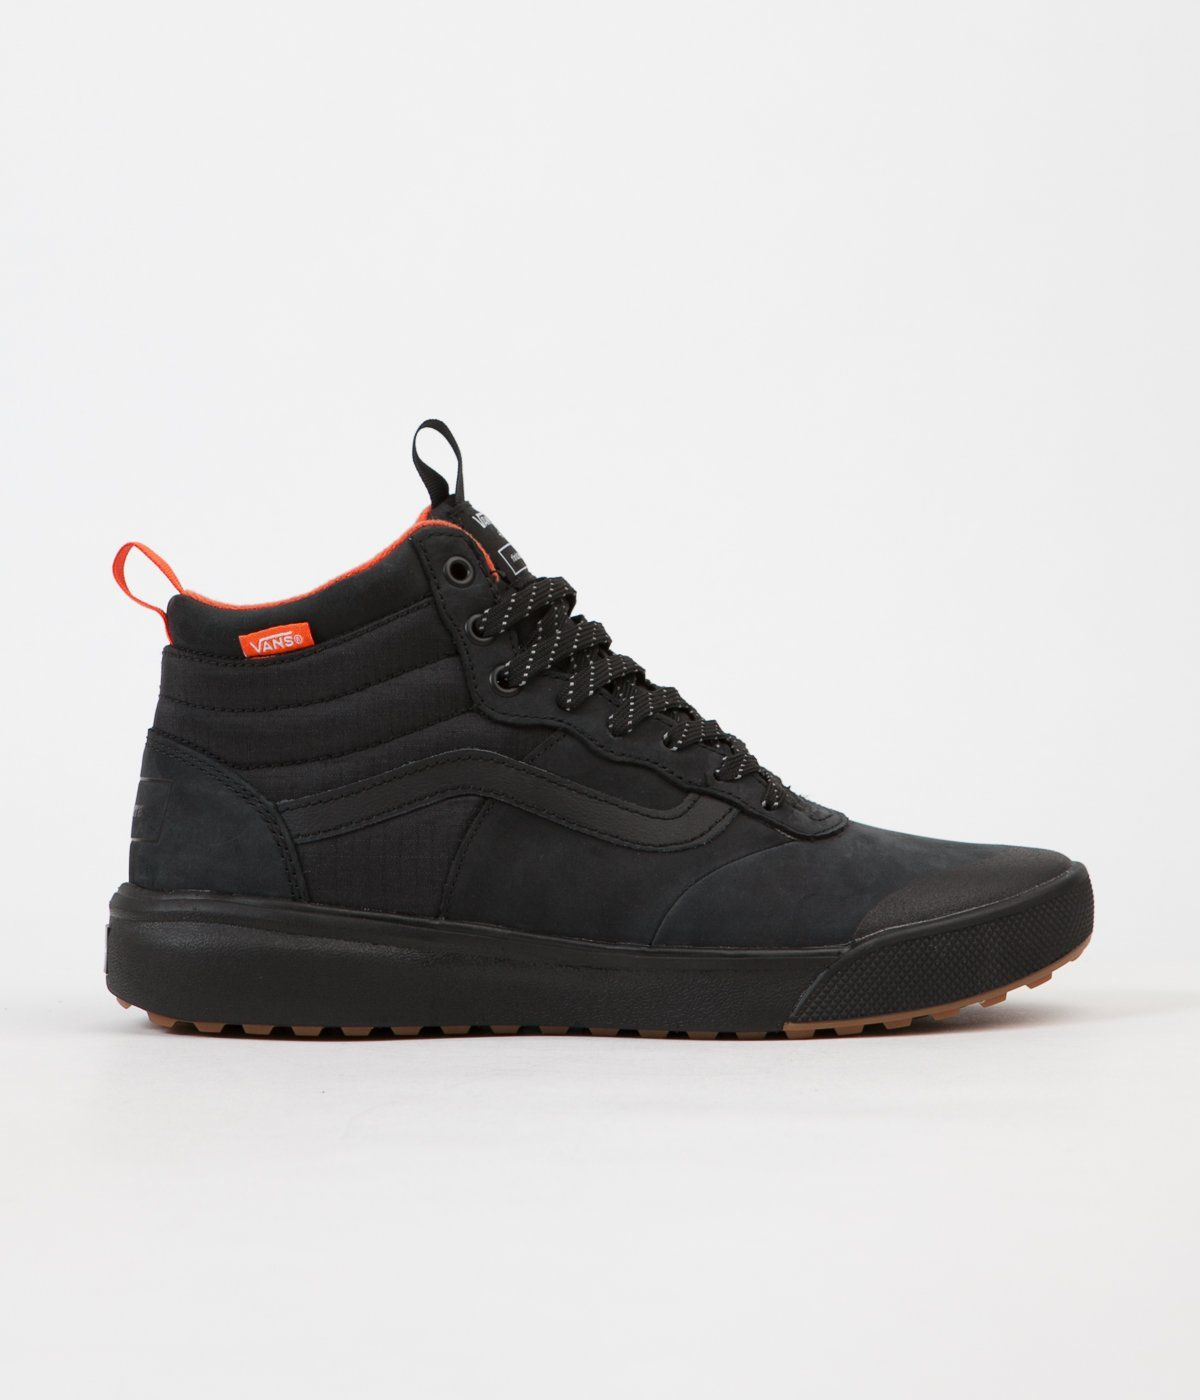 68adcd8b71f5 Vans X Finisterre UltraRange Hi Shoes - Black   Nubuck